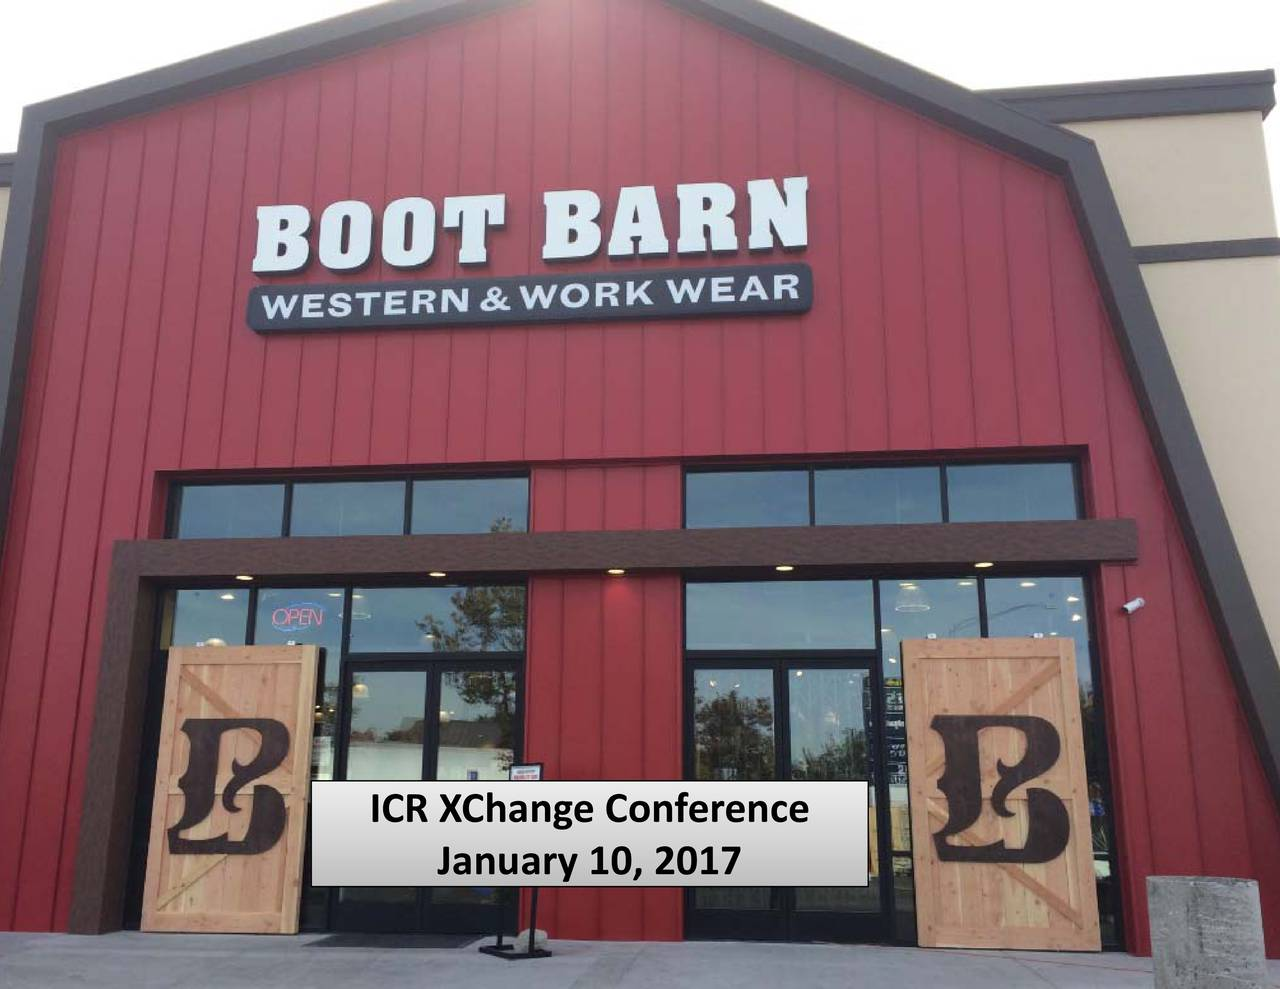 Email Alerts >> Boot Barn (BOOT) presents at 2017 ICR Conference - Boot Barn Holdings (NASDAQ:BOOT) | Seeking Alpha